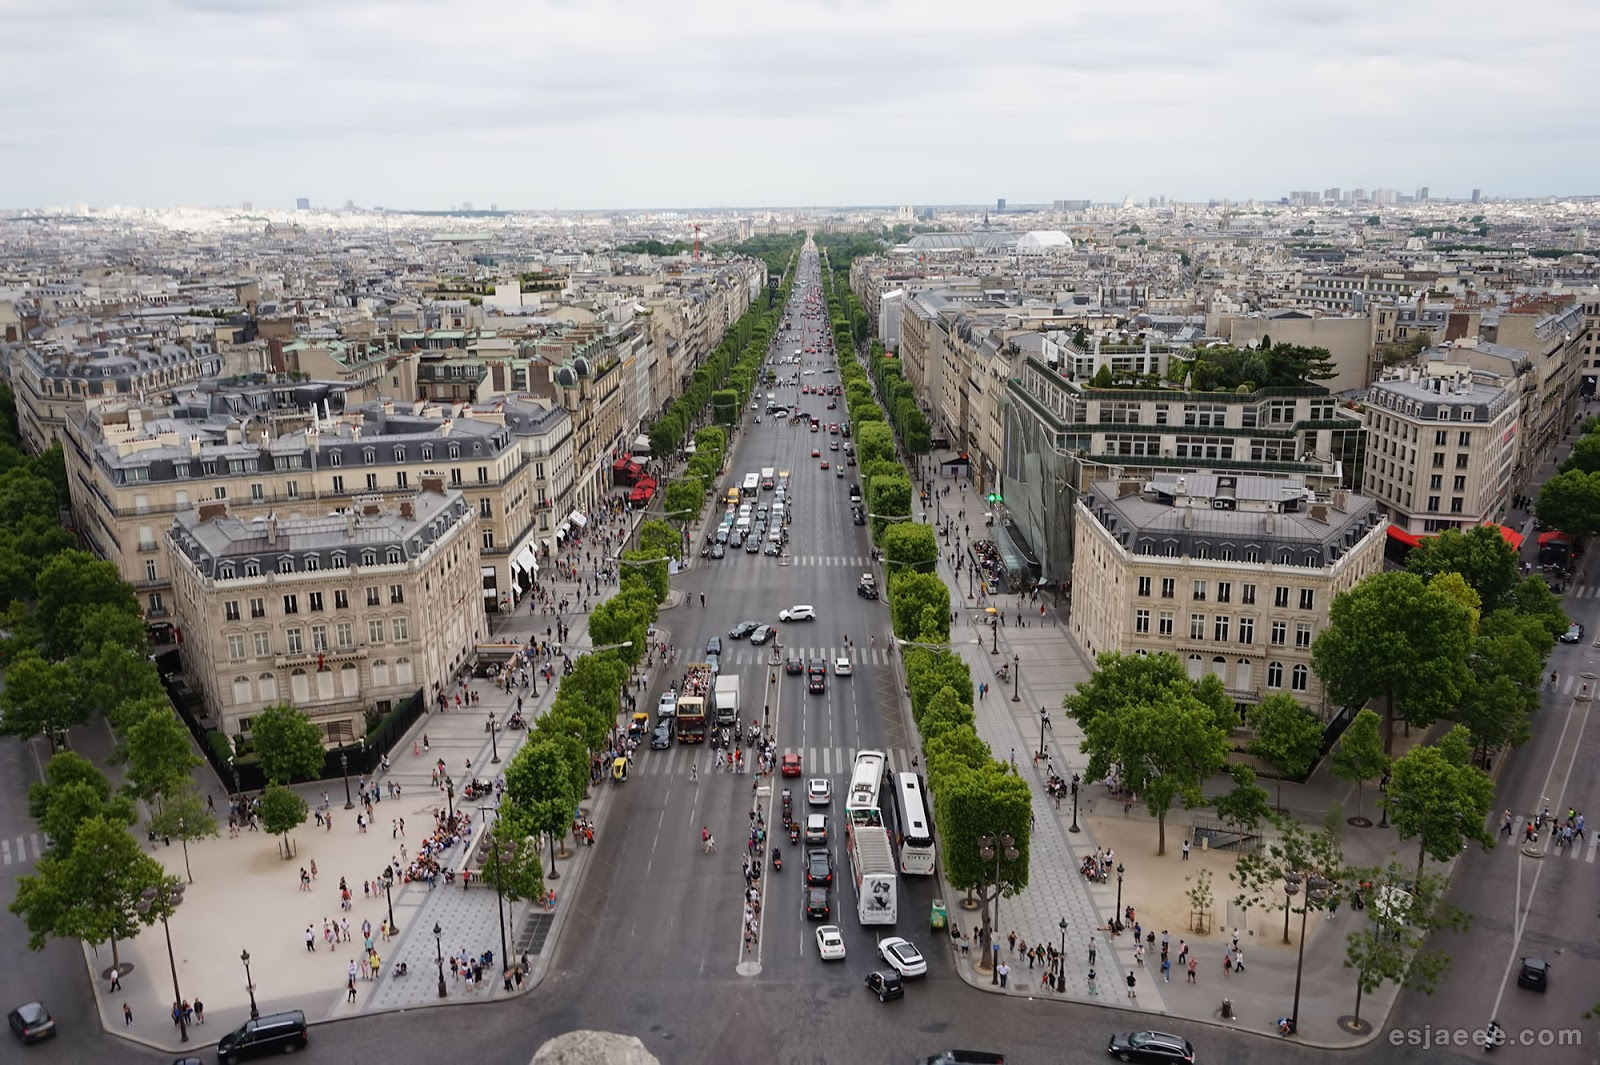 View of Champs Élysées from Arc de Triomphe